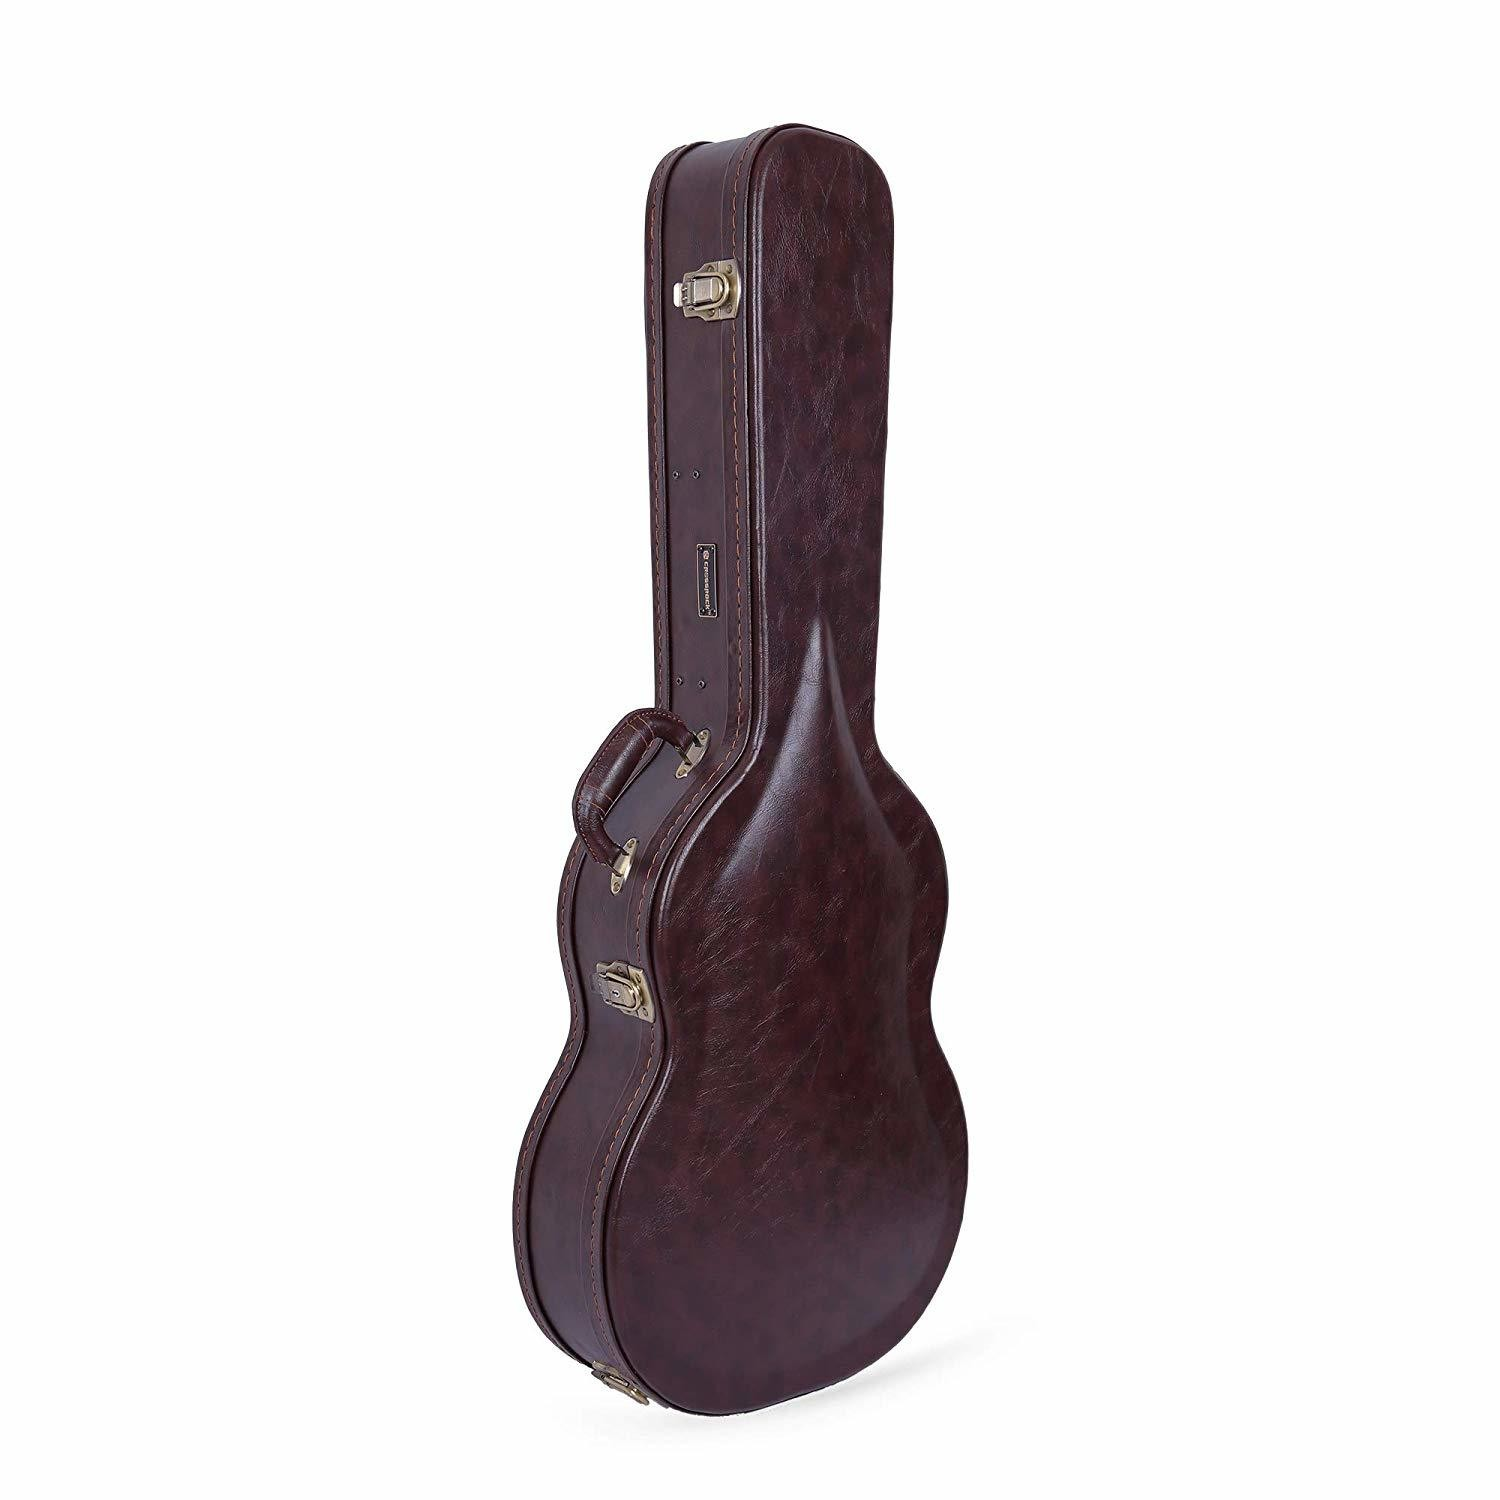 Crossrock CRW600CBR - Brown Vinyl Covered Wood - Hardshell Case